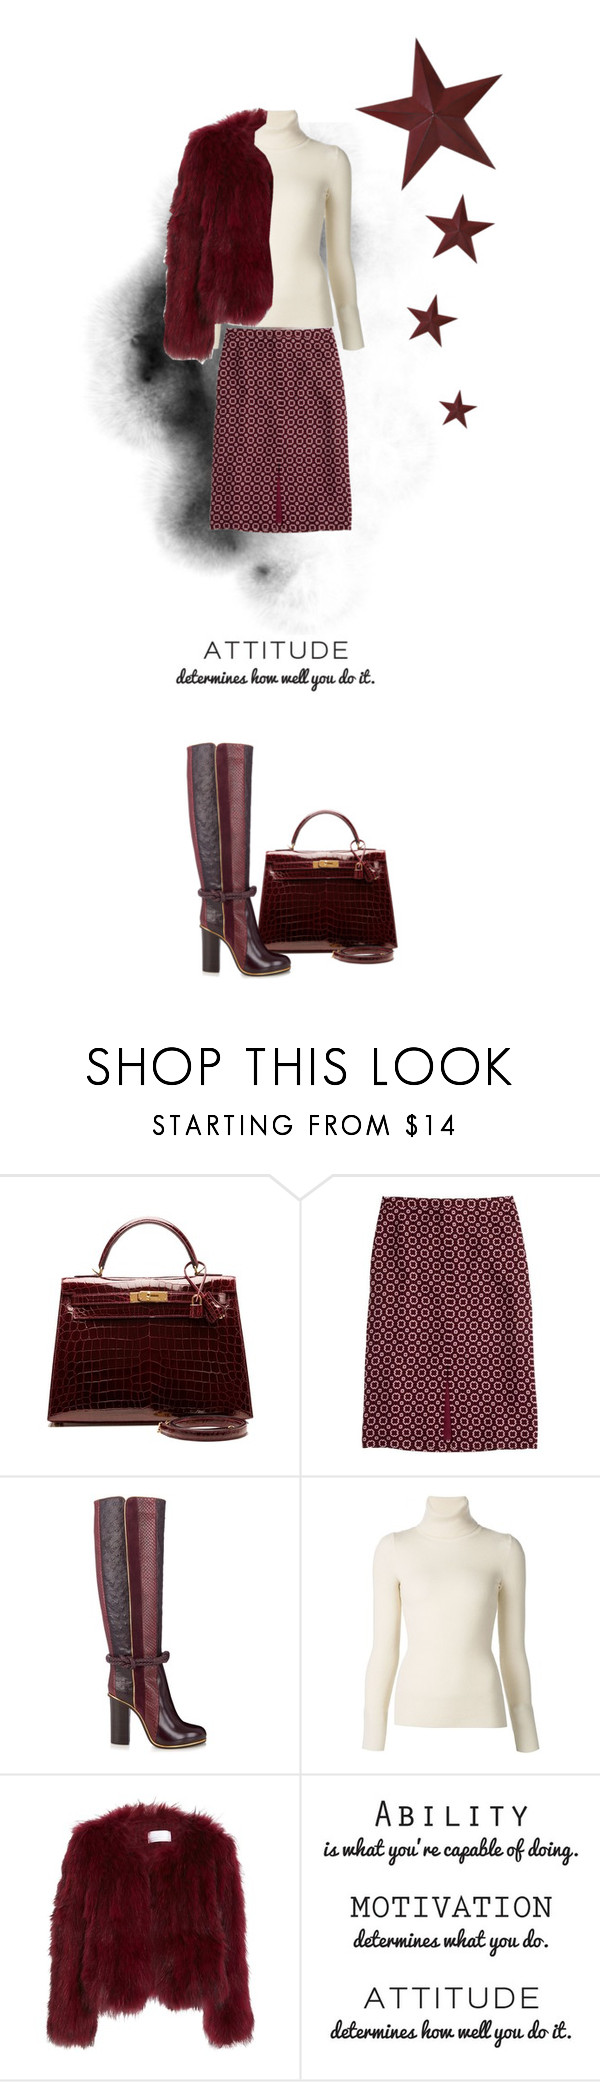 """""""burgundy chic"""" by mrs-campbell ❤ liked on Polyvore featuring Hermès, J.Crew, Lanvin, Emanuel Ungaro and Transpac"""